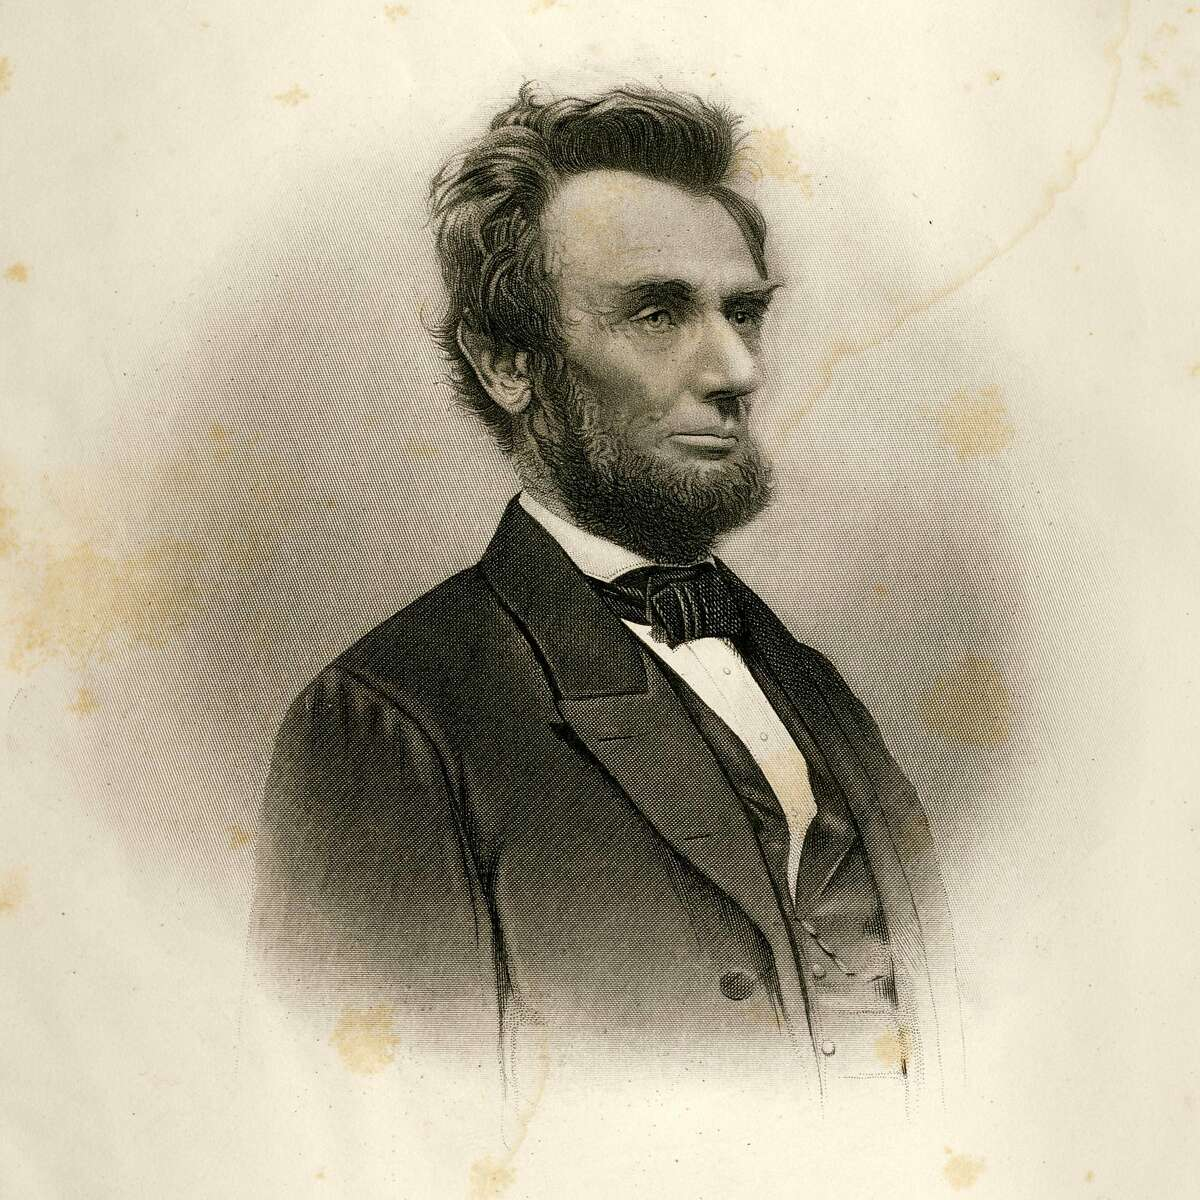 Abraham Lincoln's legacy has been called into question.